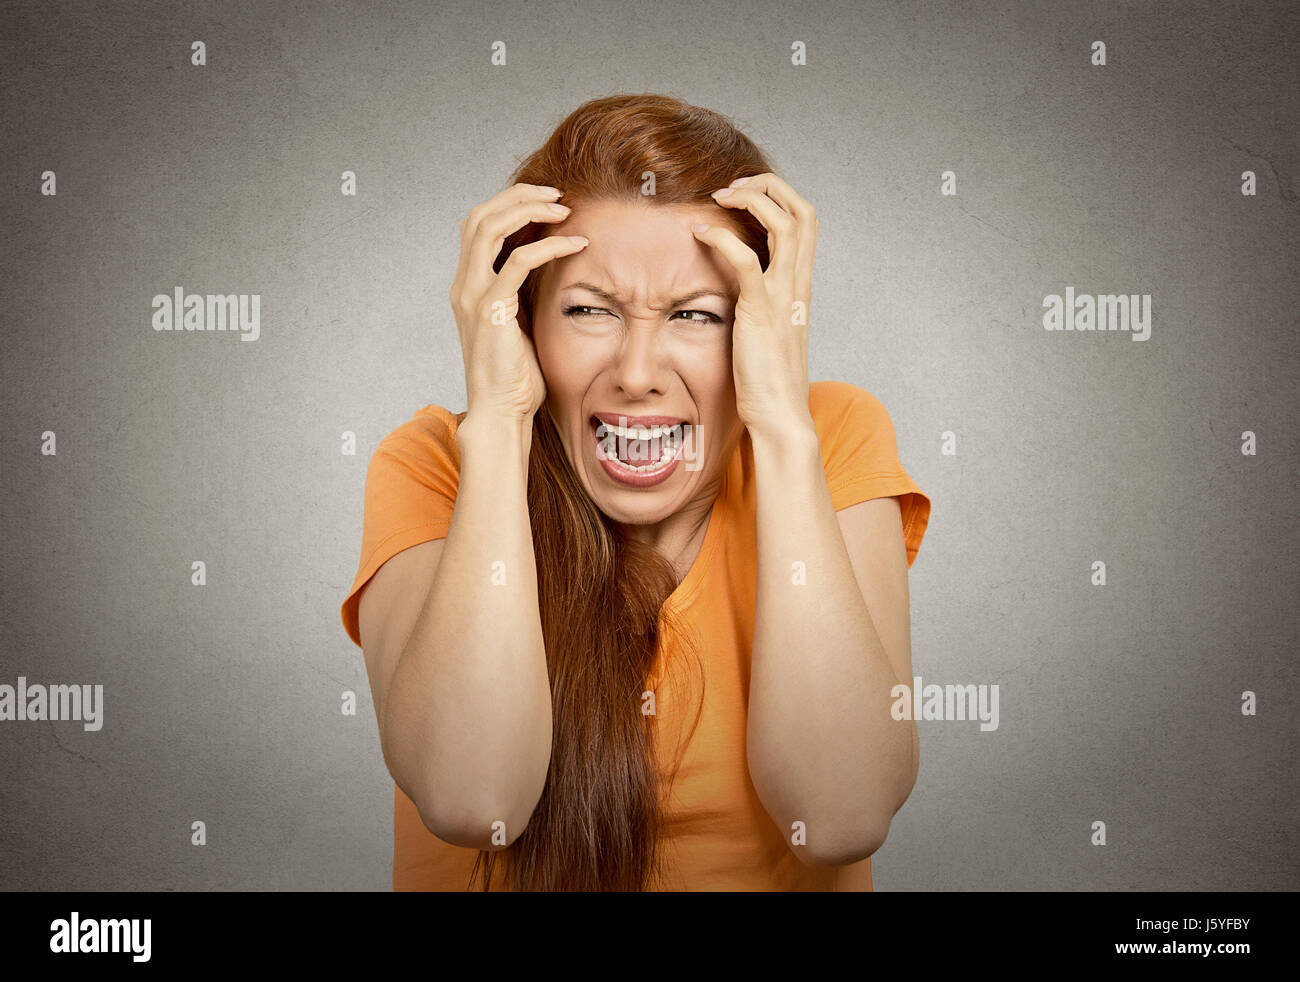 Closeup portrait stressed upset woman having breakdown hysterical yelling screaming temper tantrum isolated orange - Stock Image